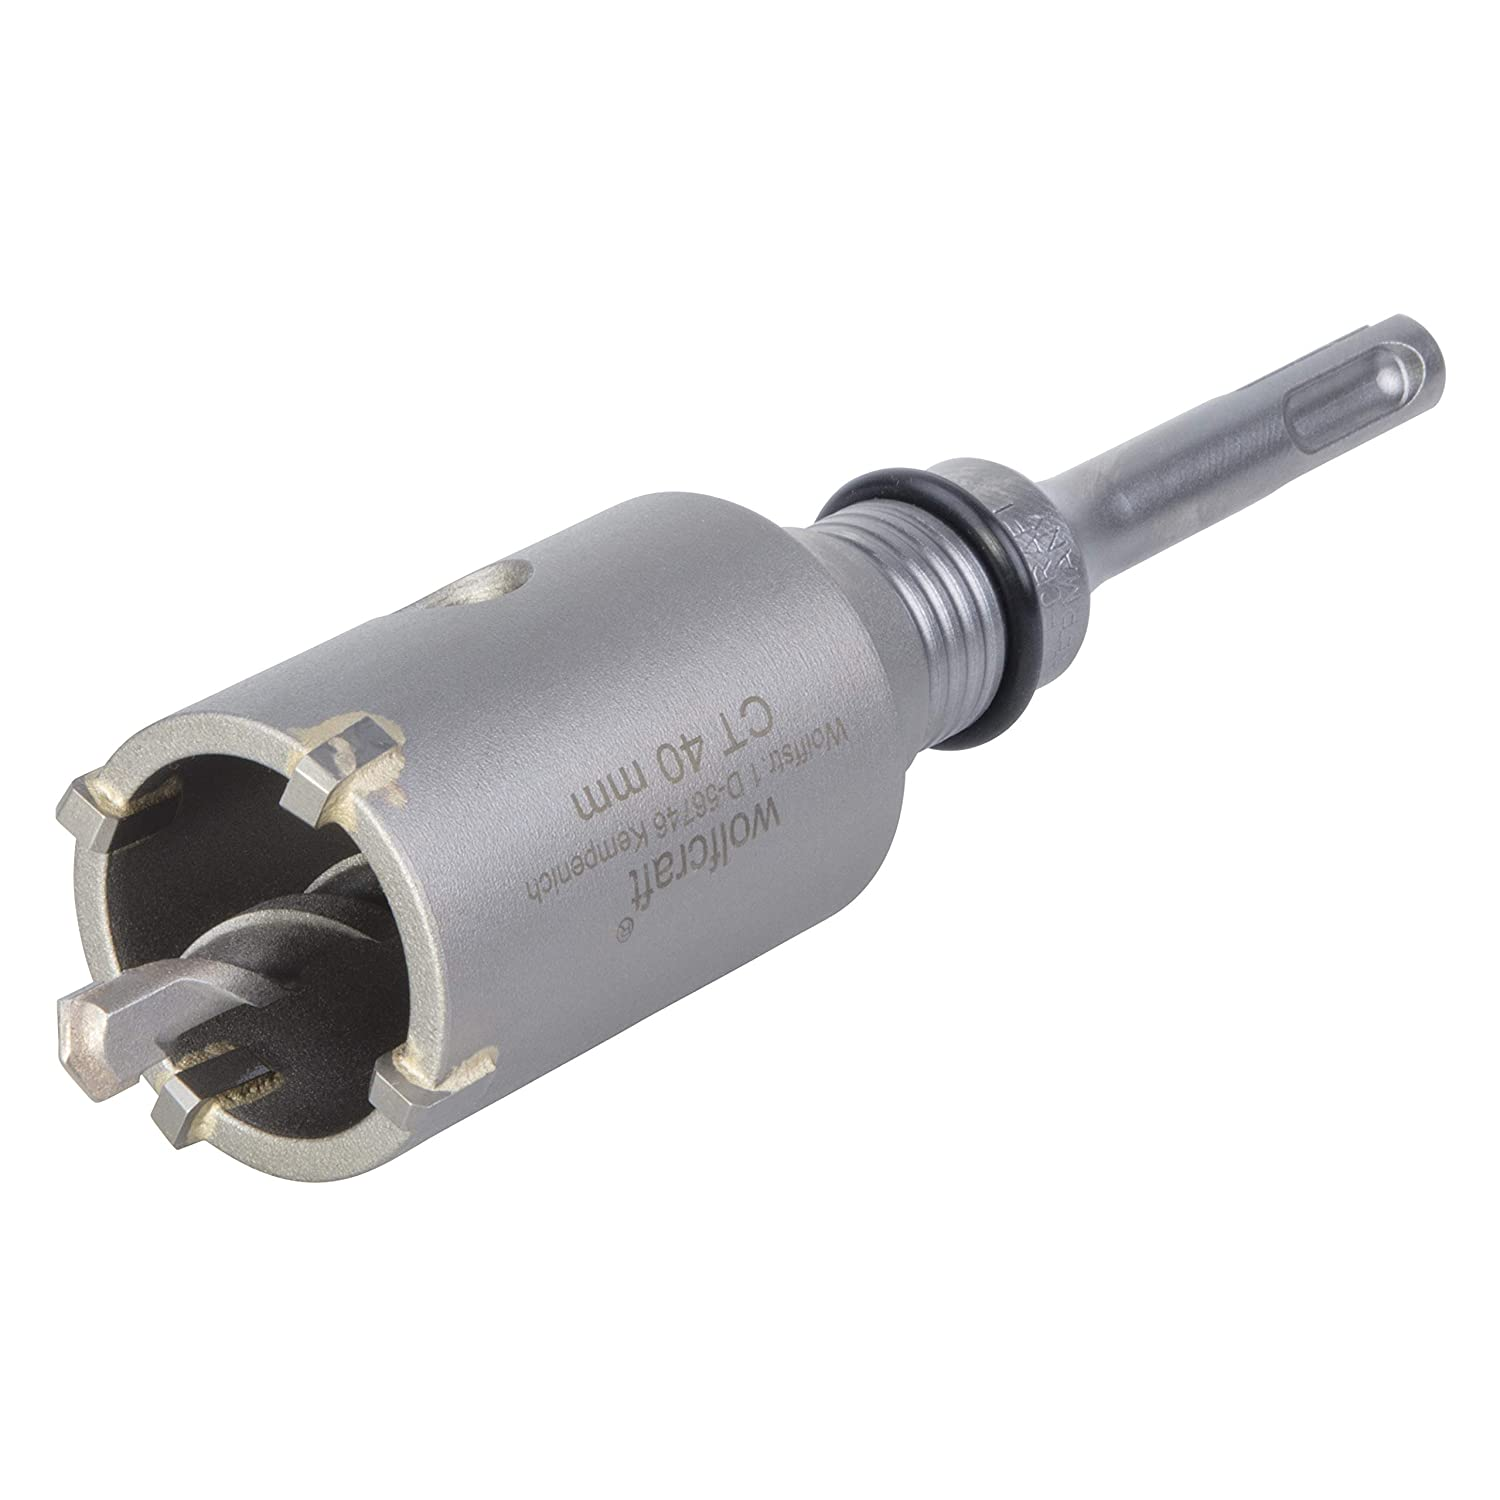 Wolfcraft 5480000 40mm Hollow Annular Bit CT with SDS Plus Adapter Impact and Shock Resistant